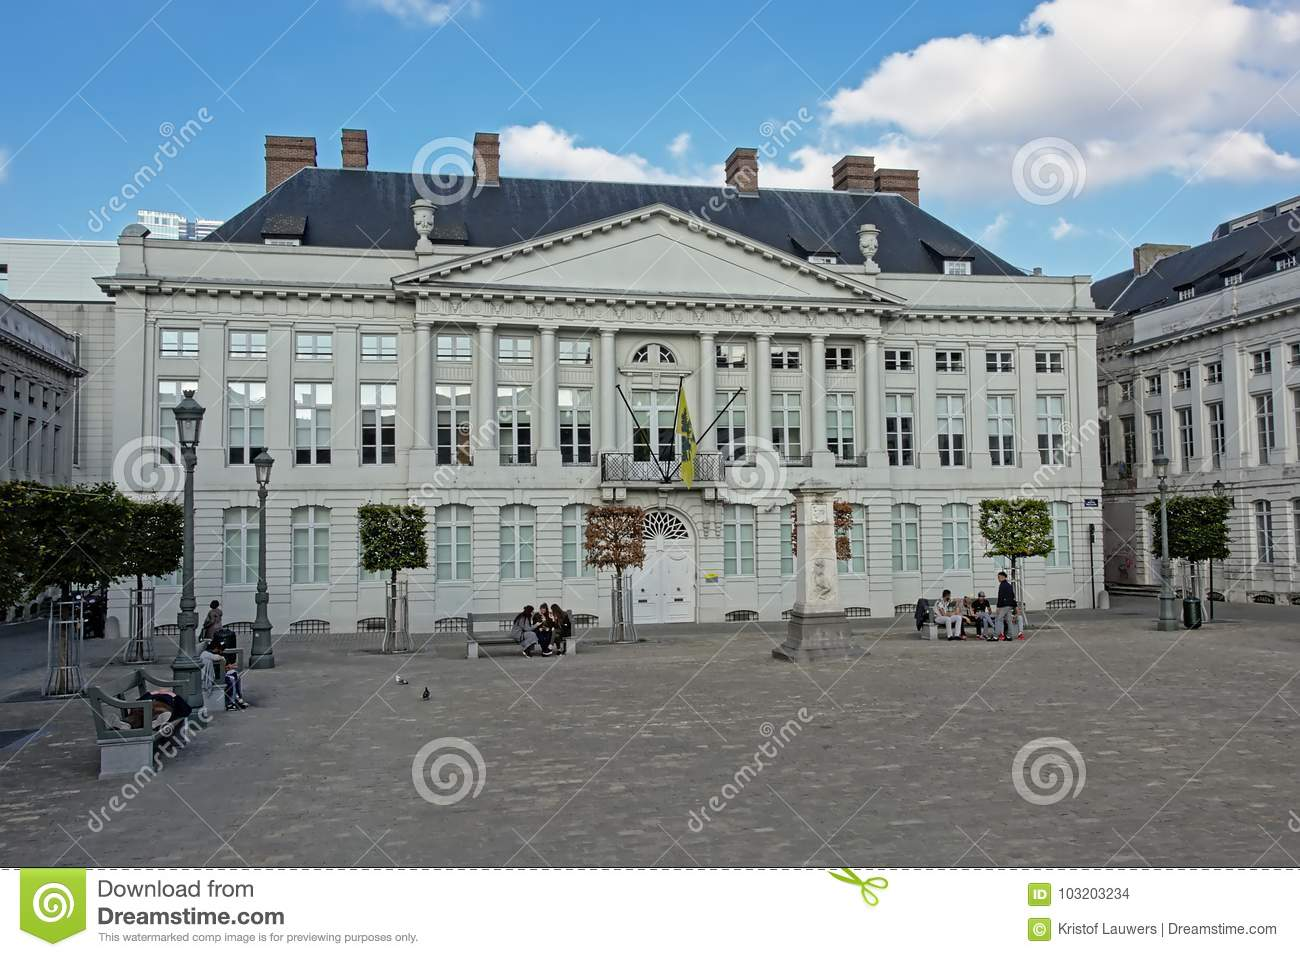 Martyr`s square in brussels, capital of Belgium